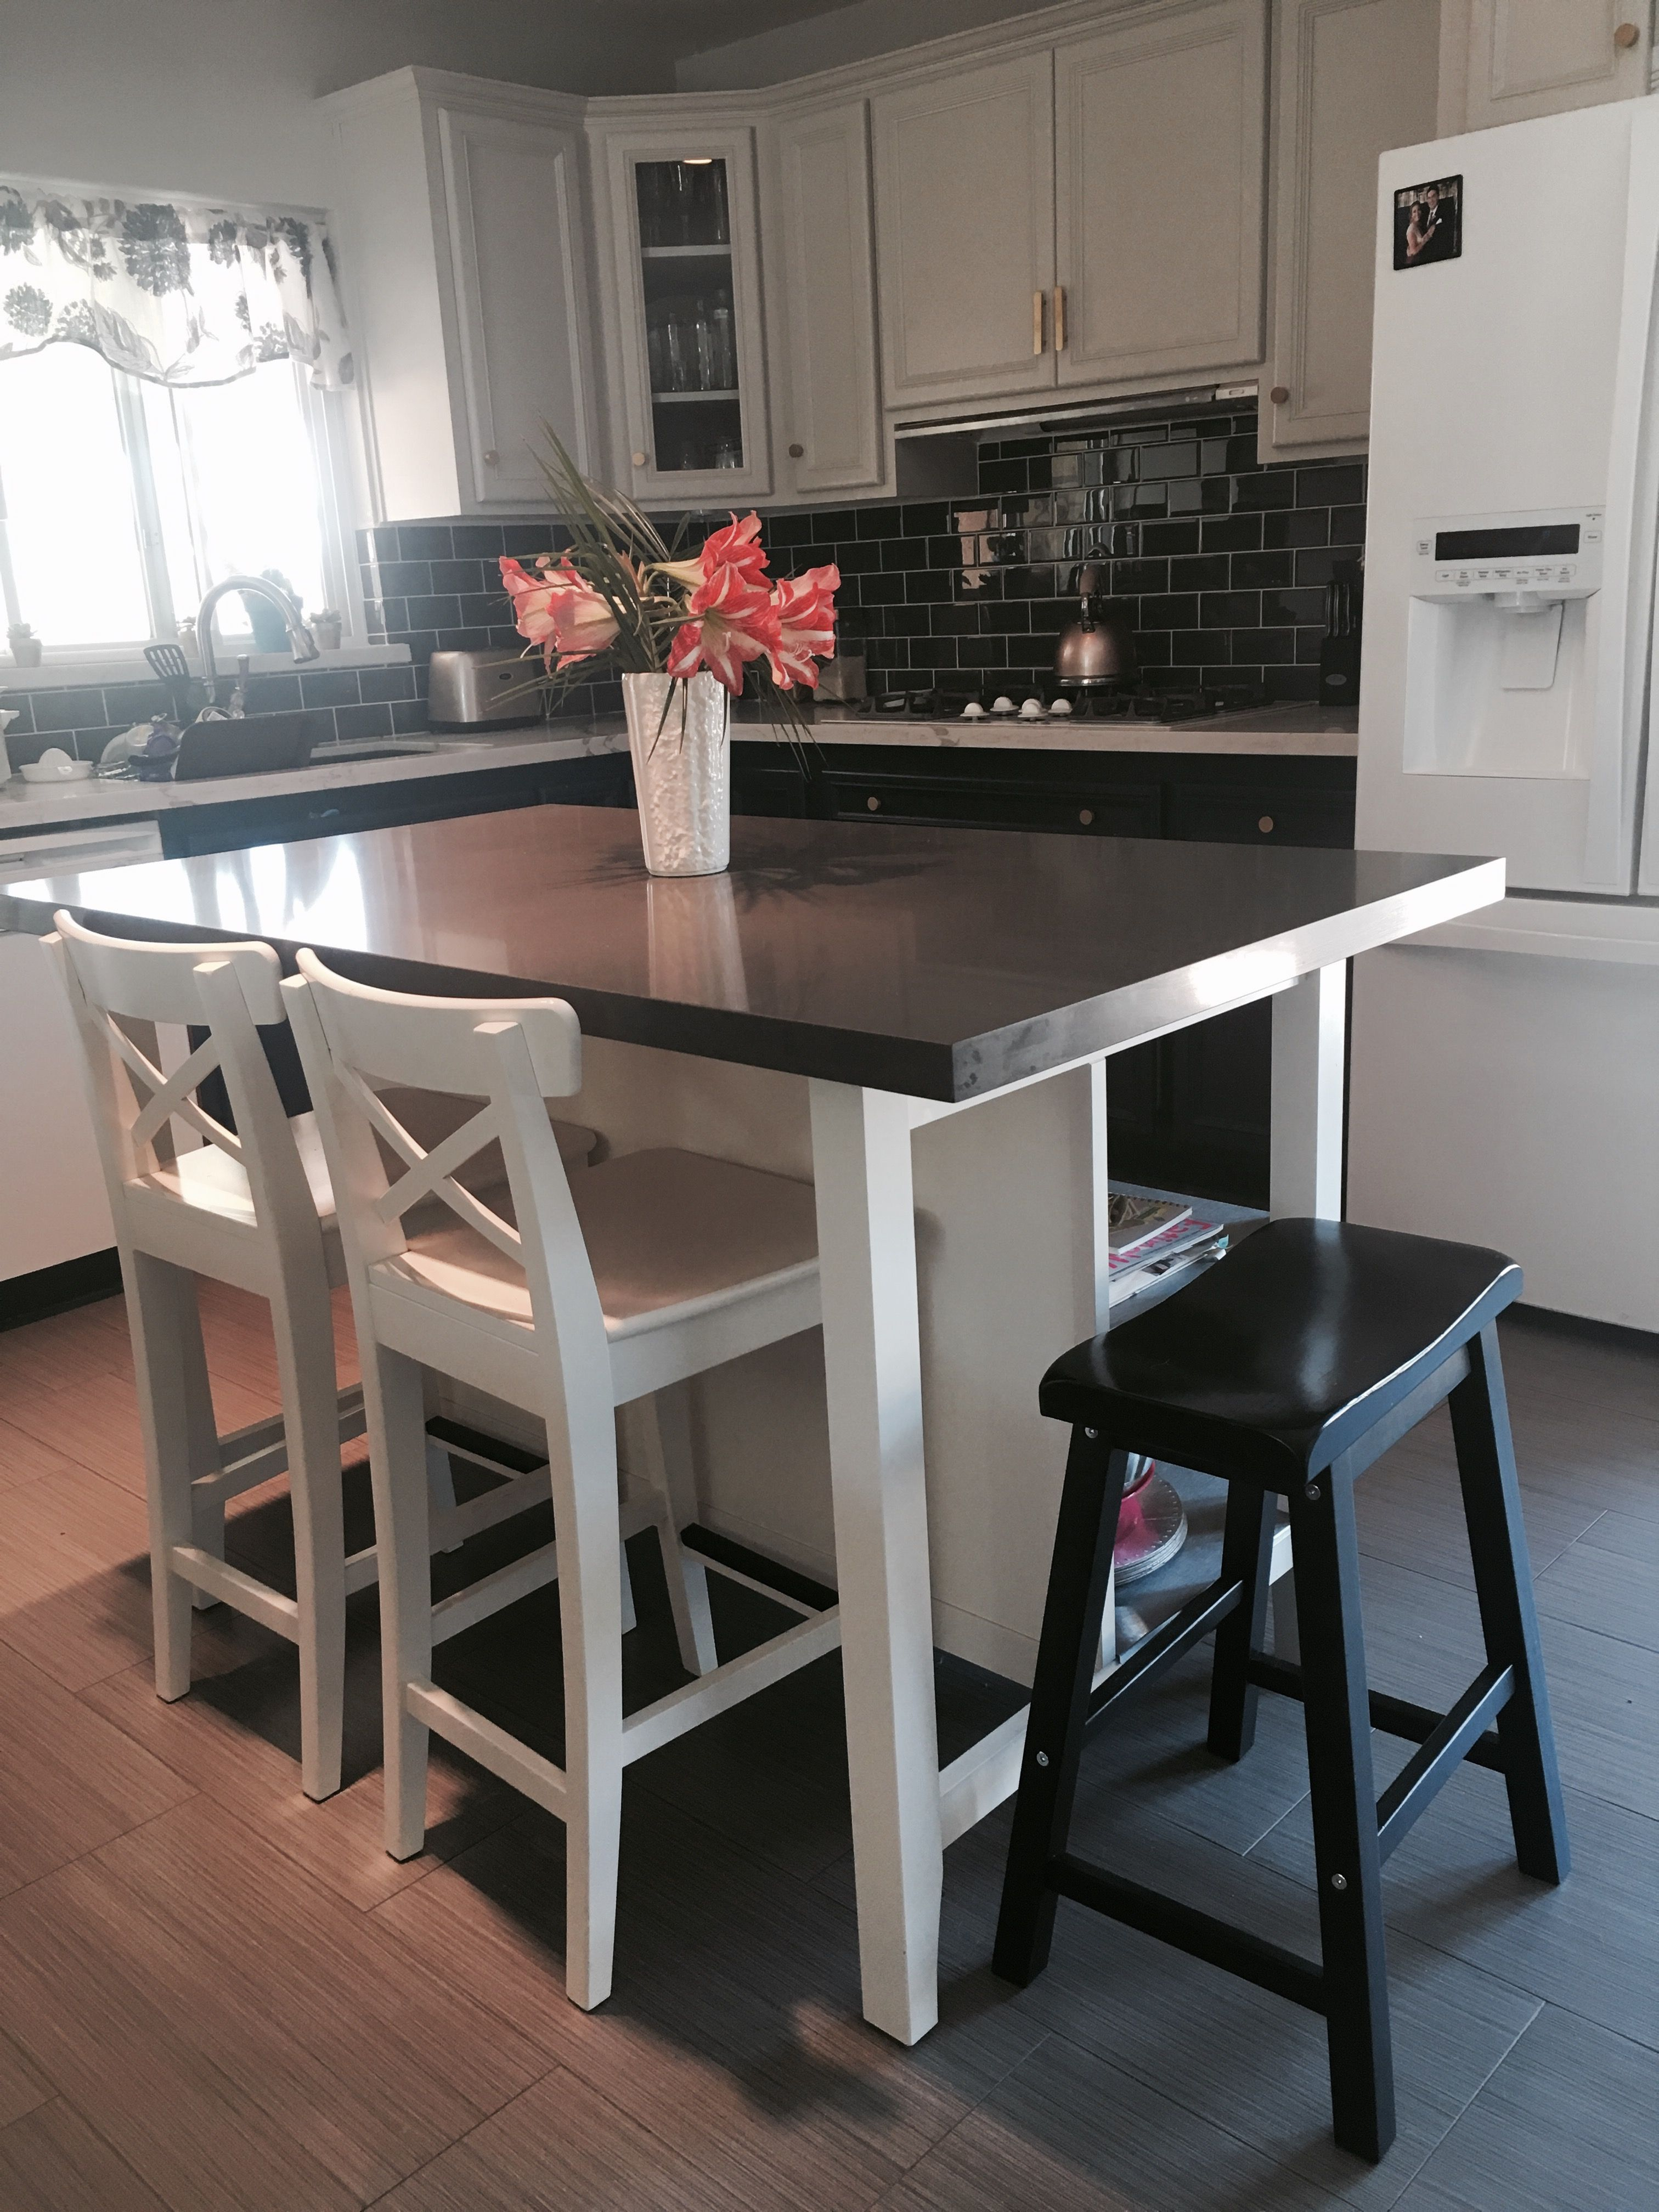 Ikea Stenstorp Kitchen Island Hack. Here is another view of ...